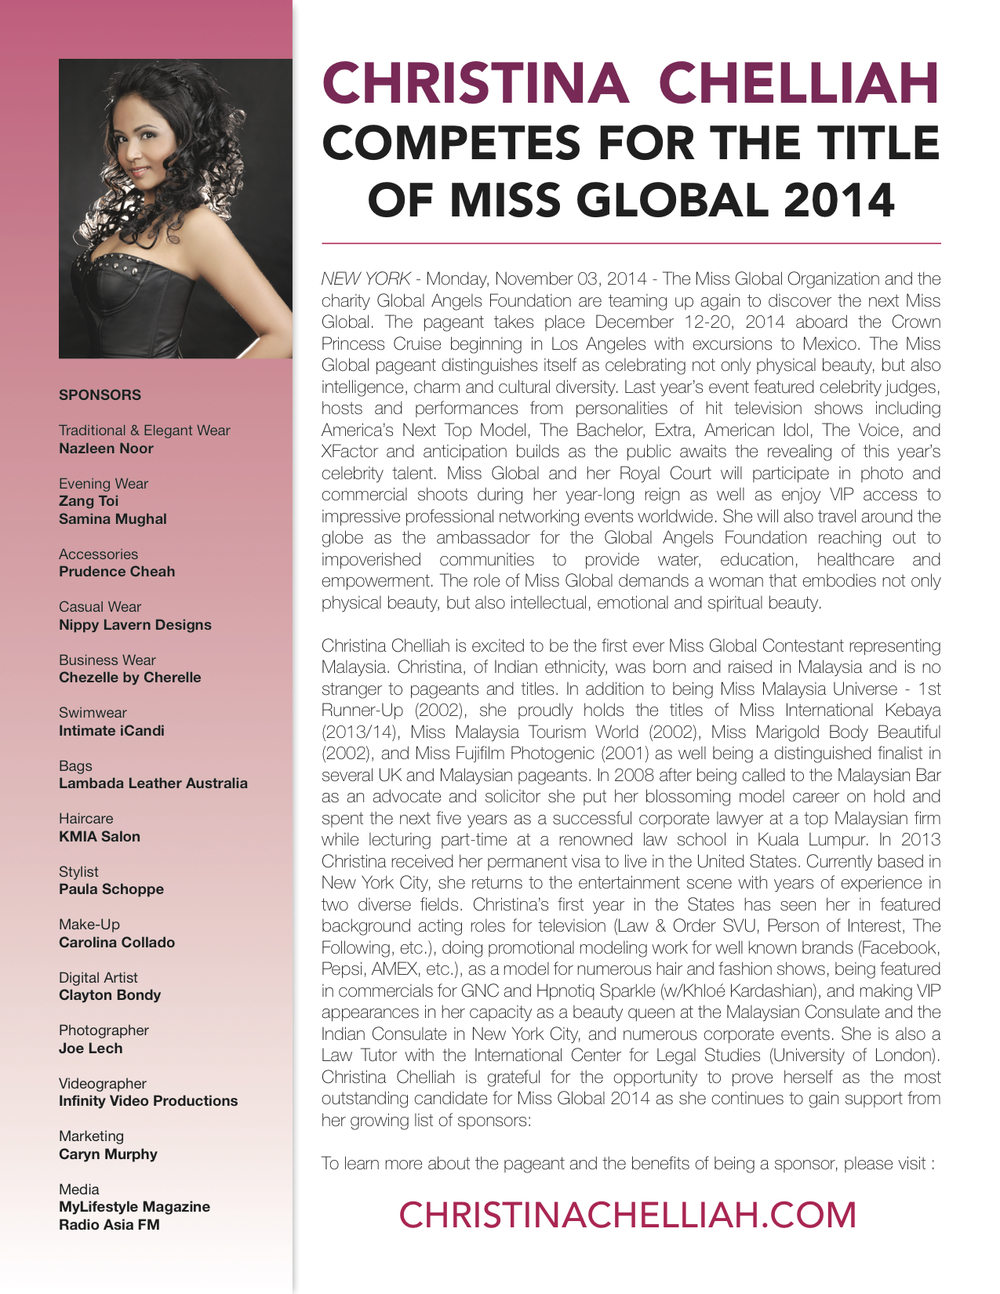 Press Release - Miss Global 2014 Malaysian Candidate Christina Chelliah.jpg